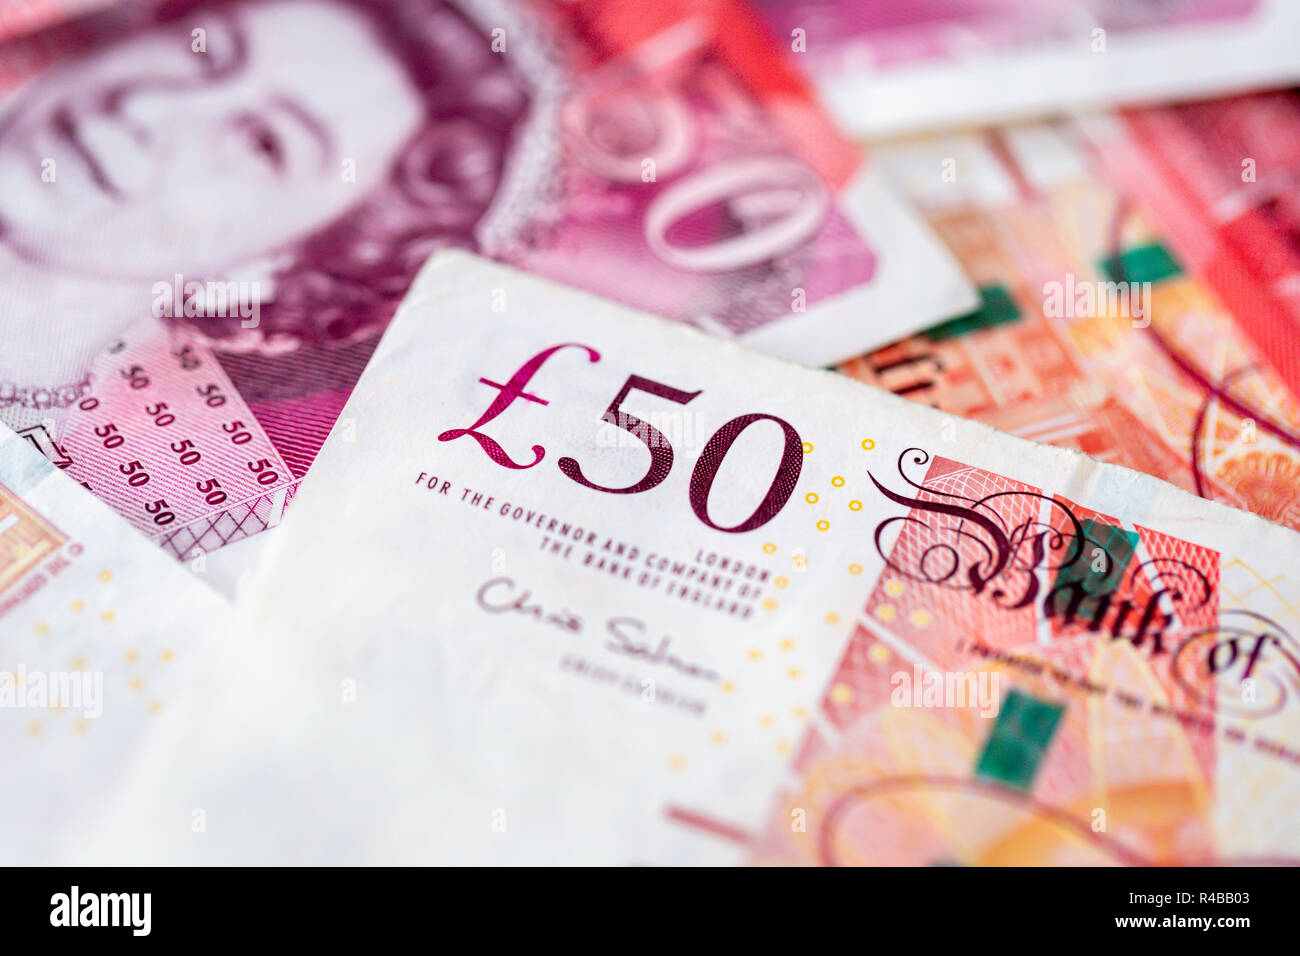 Background of a pile of fifty pound sterling bank notes - Stock Image